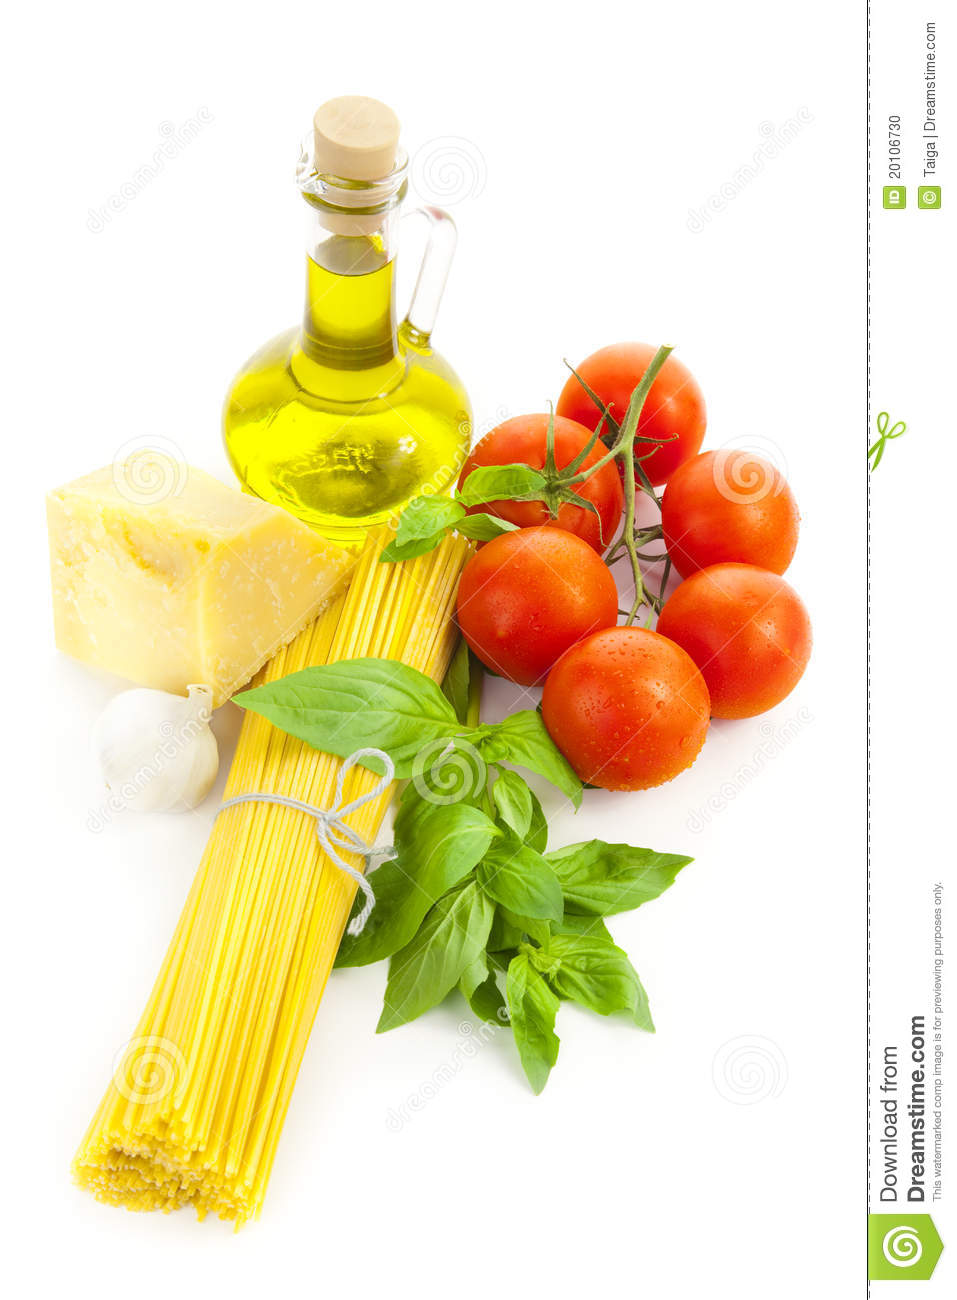 how to say ingredients in italian